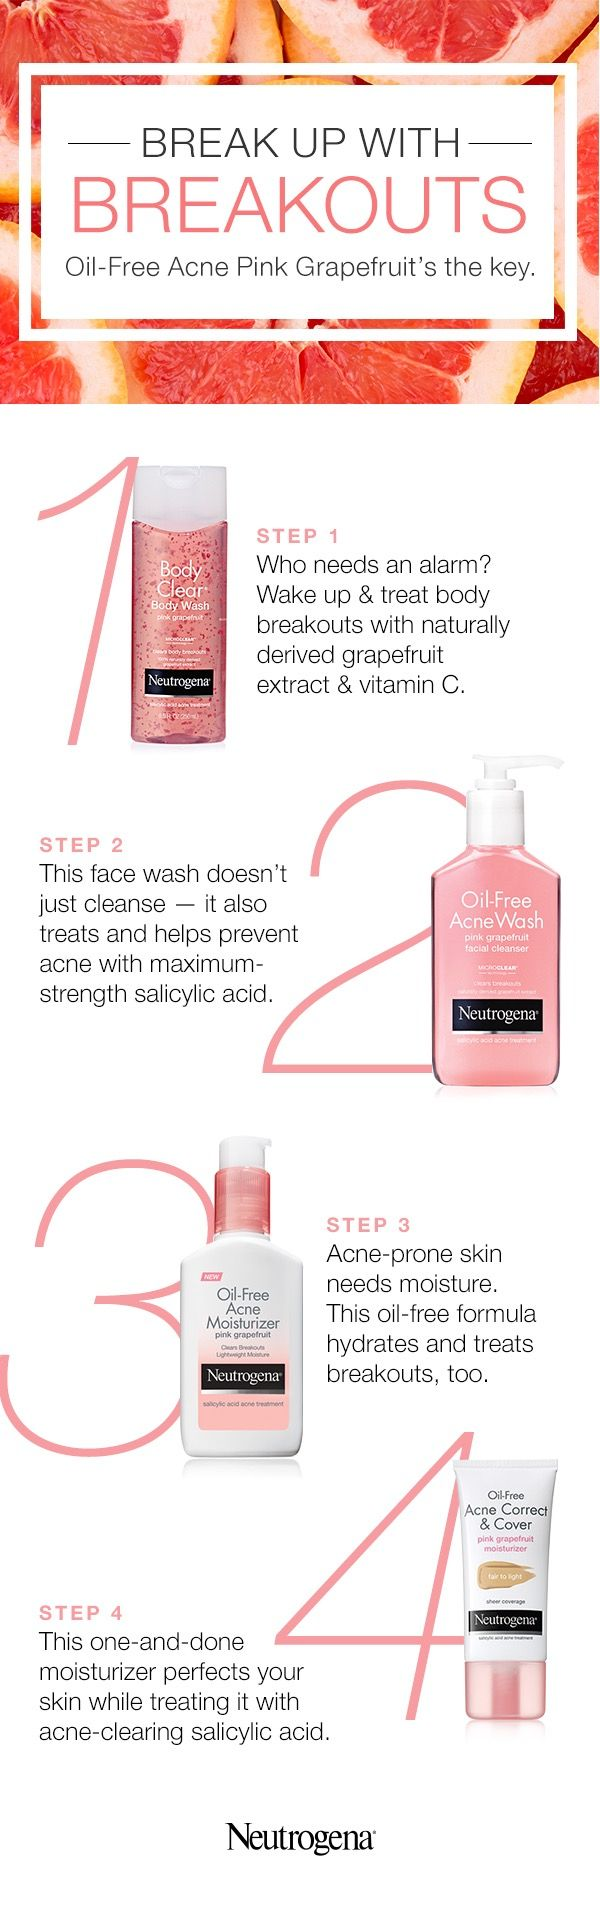 We'd love to put an end to breakouts and blackheads forever, but until then, we look to our Oil-Free Acne Pink Grapefruit collection. Combining a powerful acne treatment with naturally derived grapefruit extract and vitamin C, it helps you clear skin. From our bubbly Body Clear Body Wash to our must-try products for face (Acne Facial Wash, Acne Moisturizer, Acne Correct & Cover), winning the fight against acne has never felt quite so delicious.